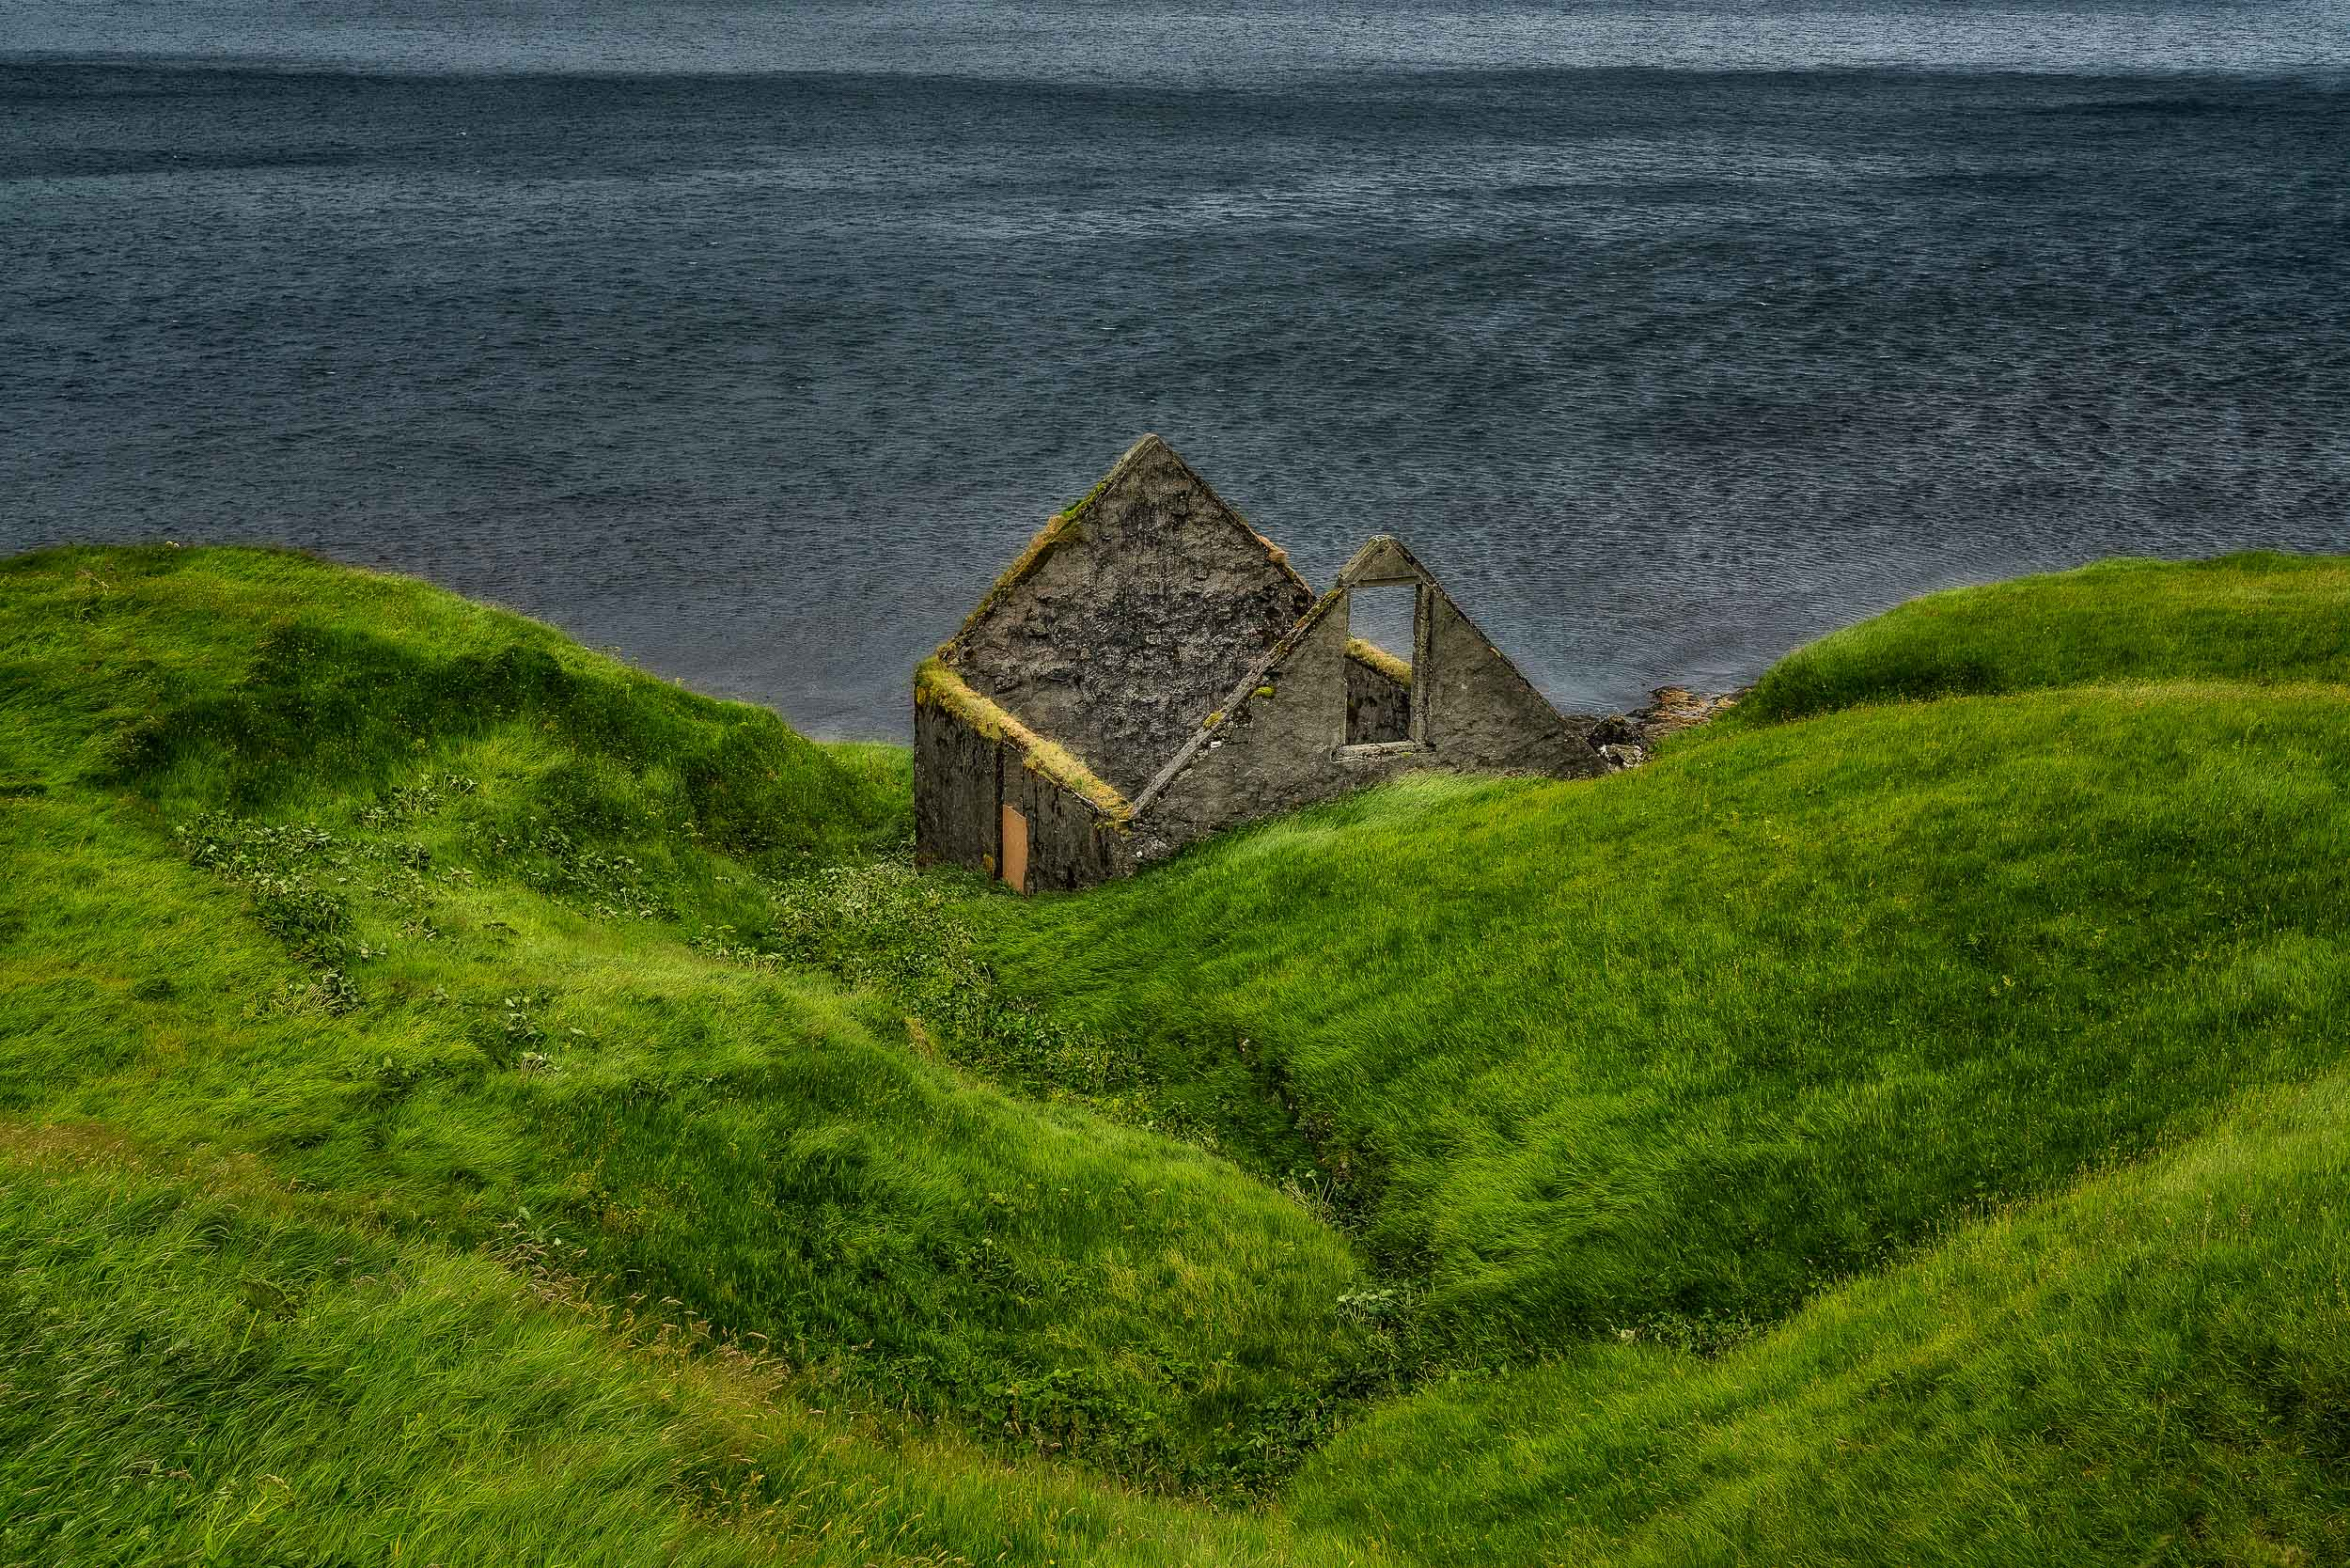 The    ruins of a dwelling    by the shores of the sea on the island of    Eysturoy    in the    Faroe Islands   .